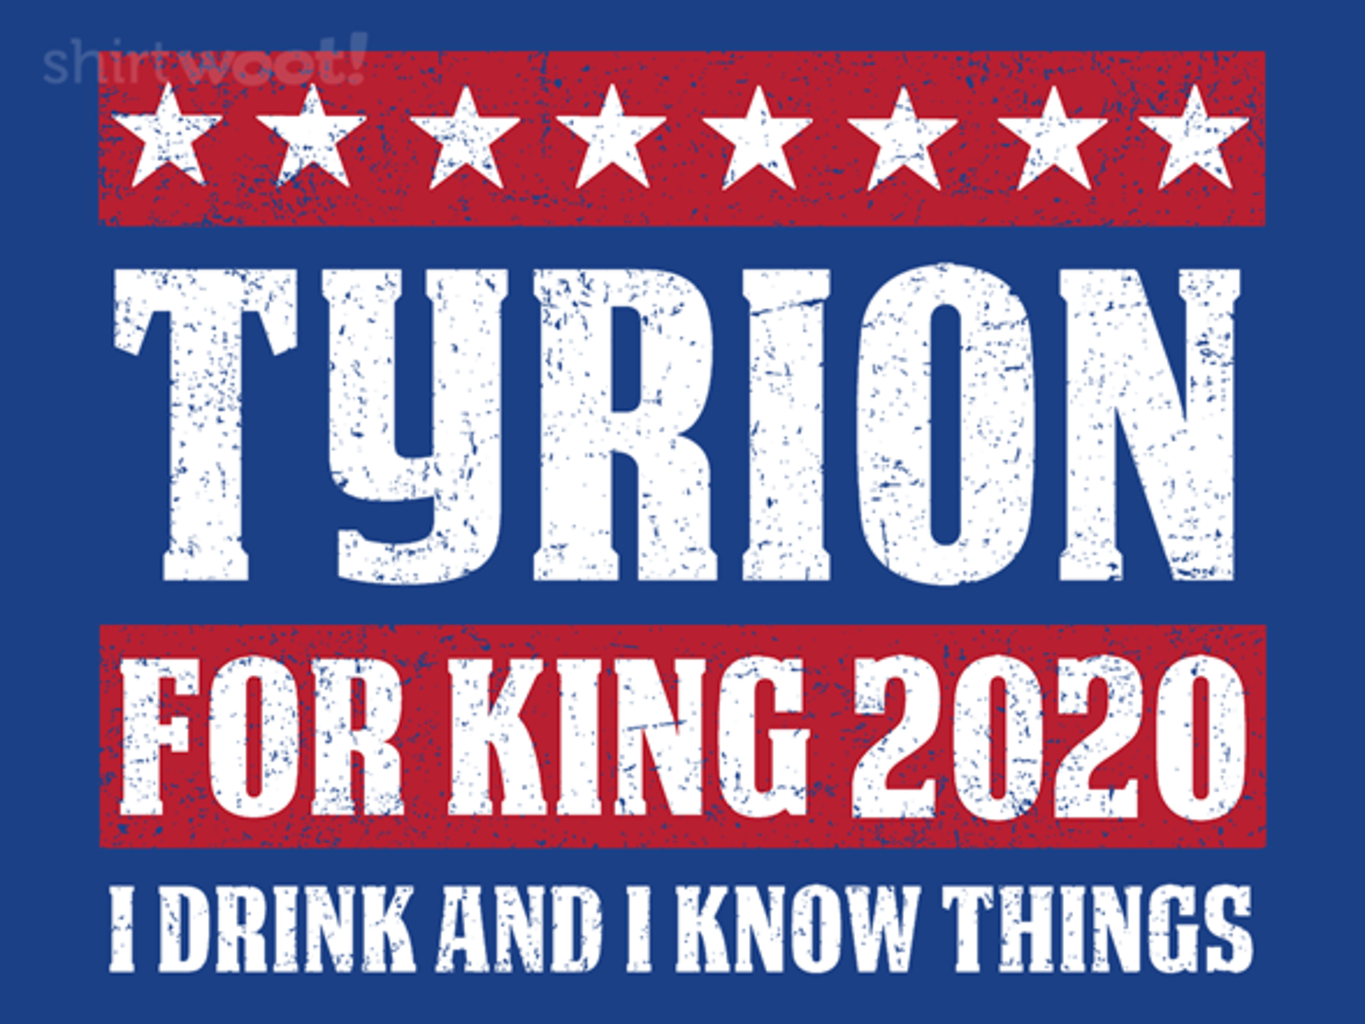 Woot!: Tyrion 2020